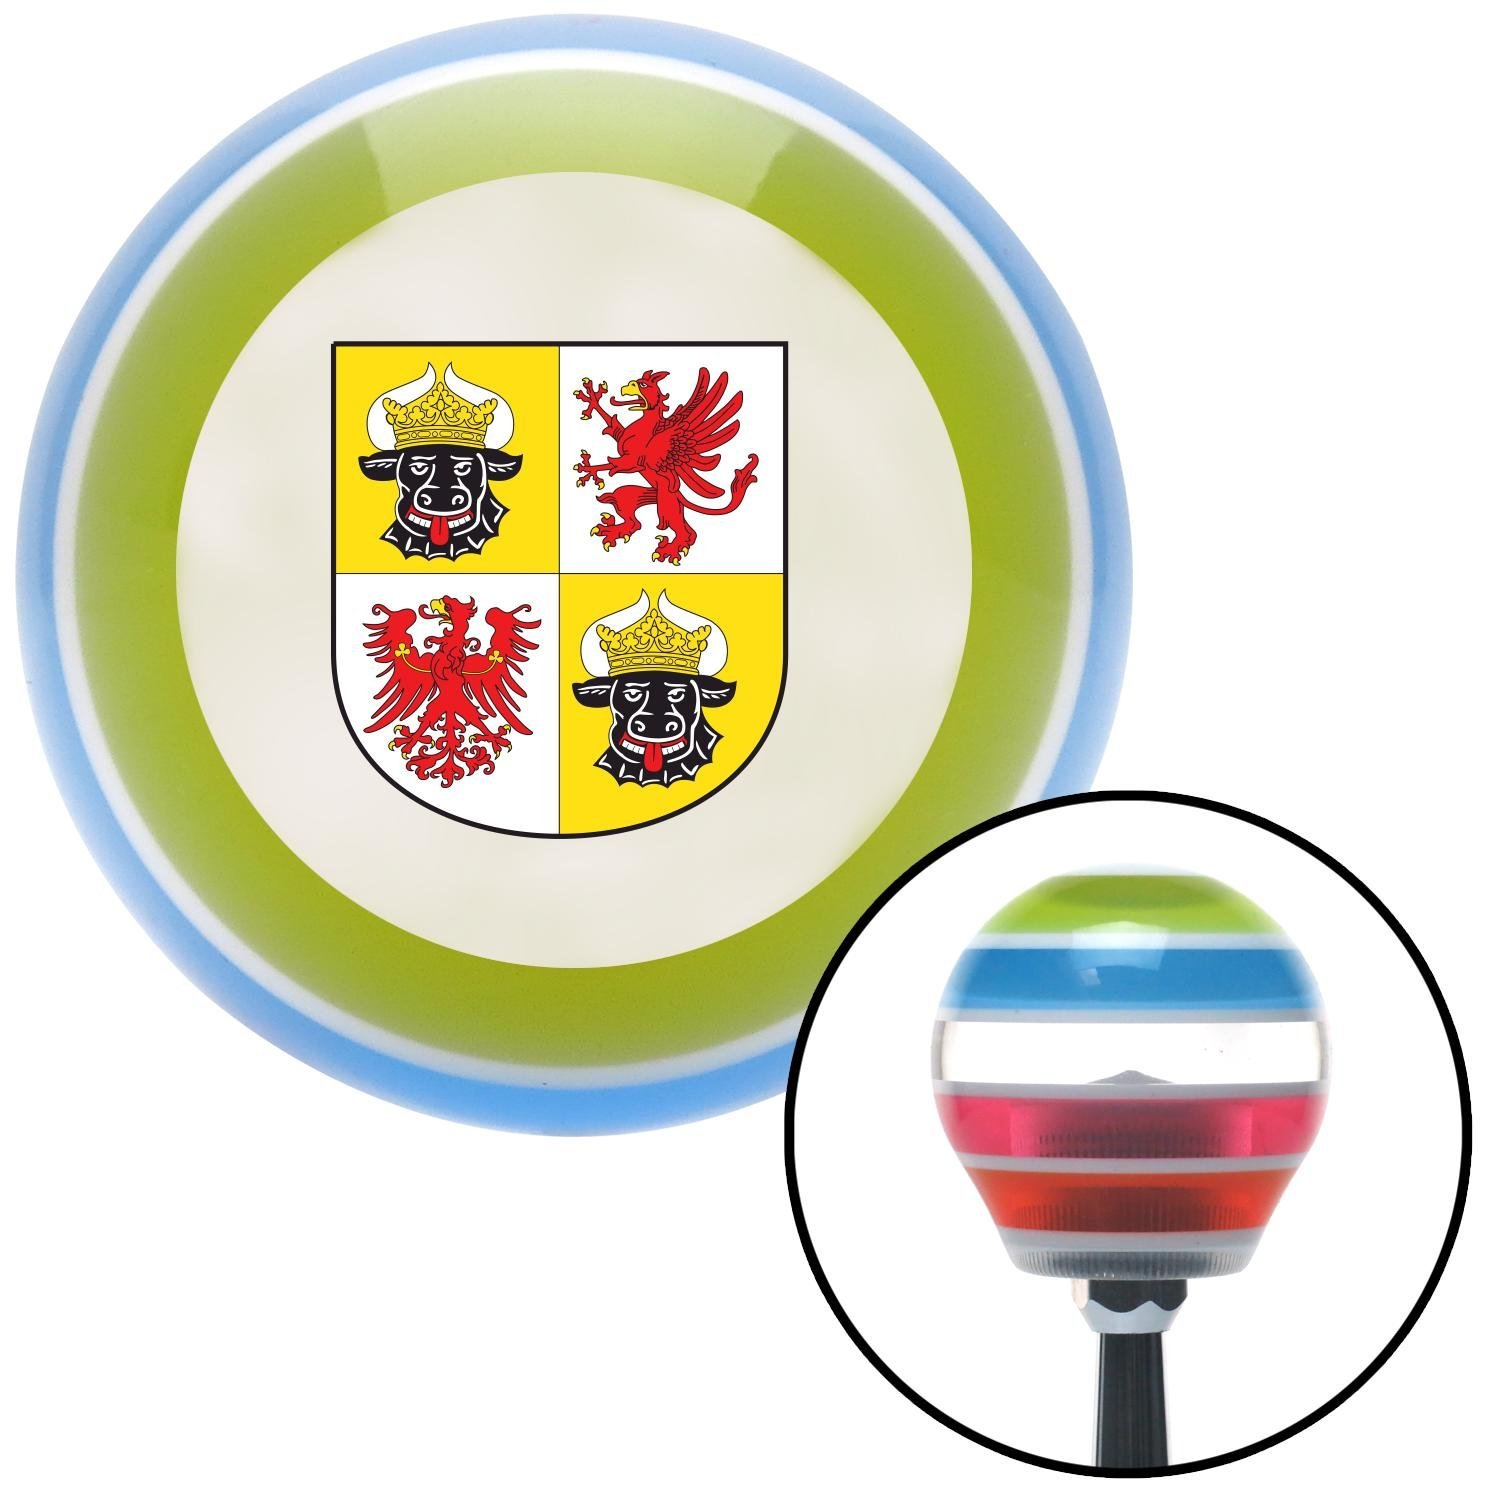 Mecklenburg Western Pomerania Coat of Arms American Shifter 133081 Stripe Shift Knob with M16 x 1.5 Insert